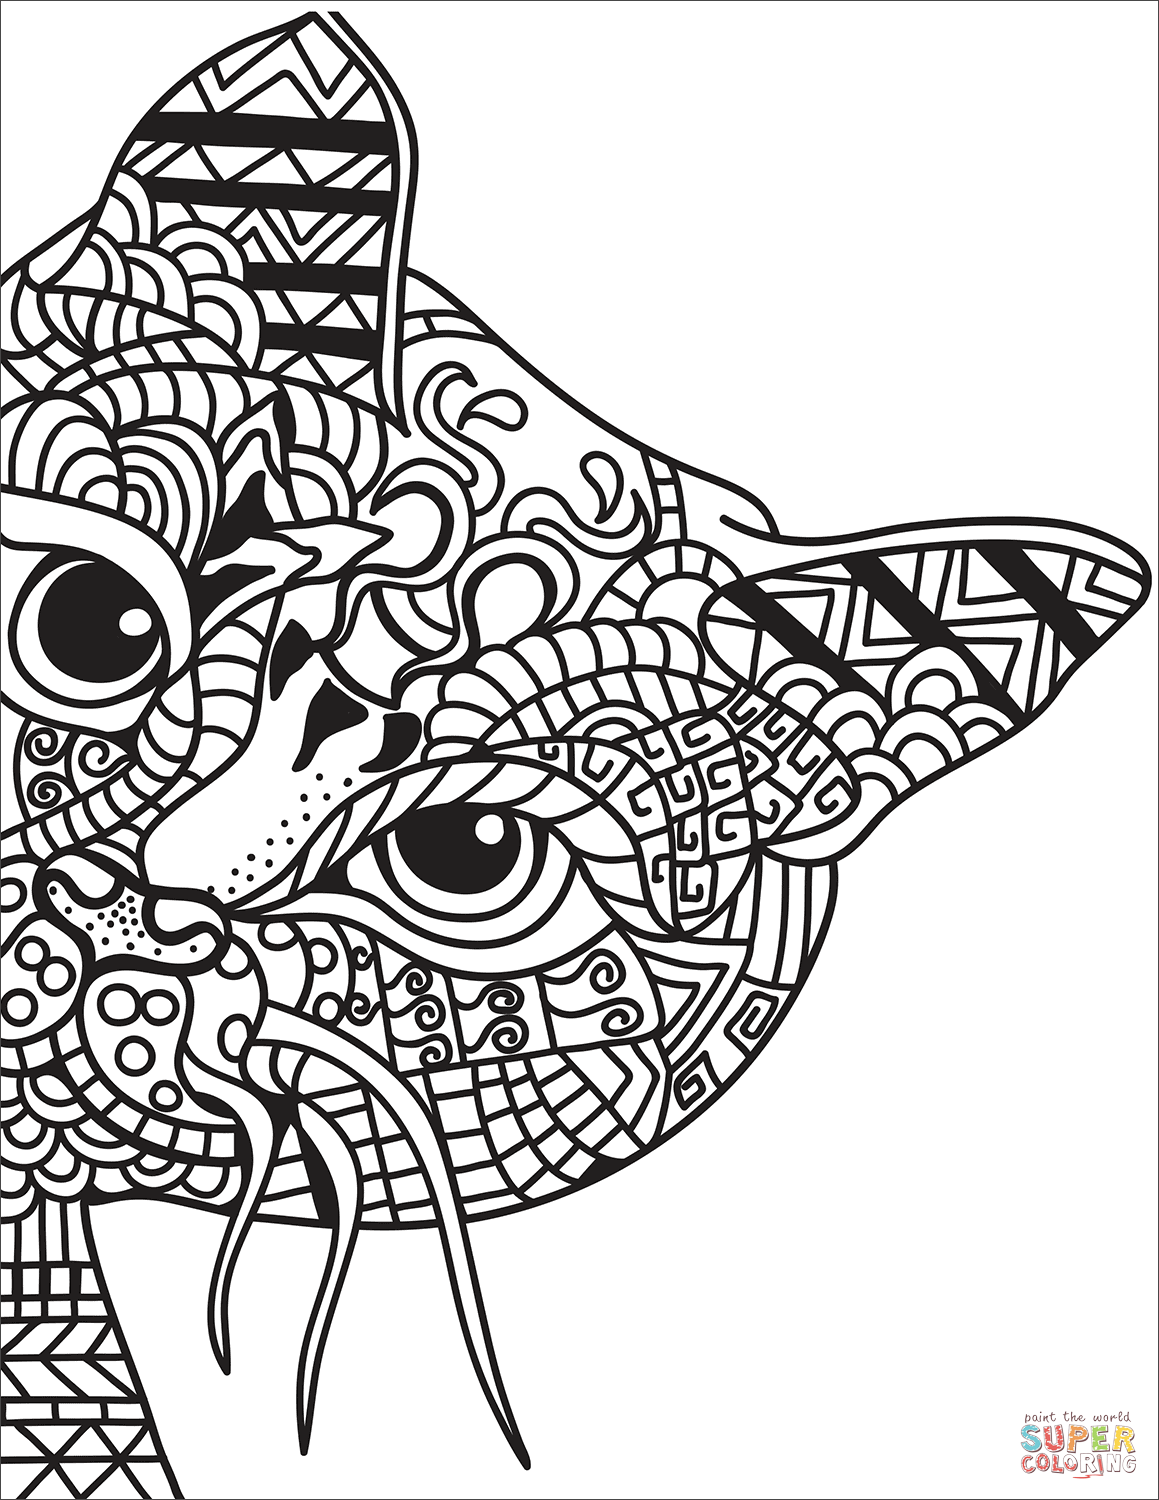 Dibujo De Gato Zentangle Para Colorear